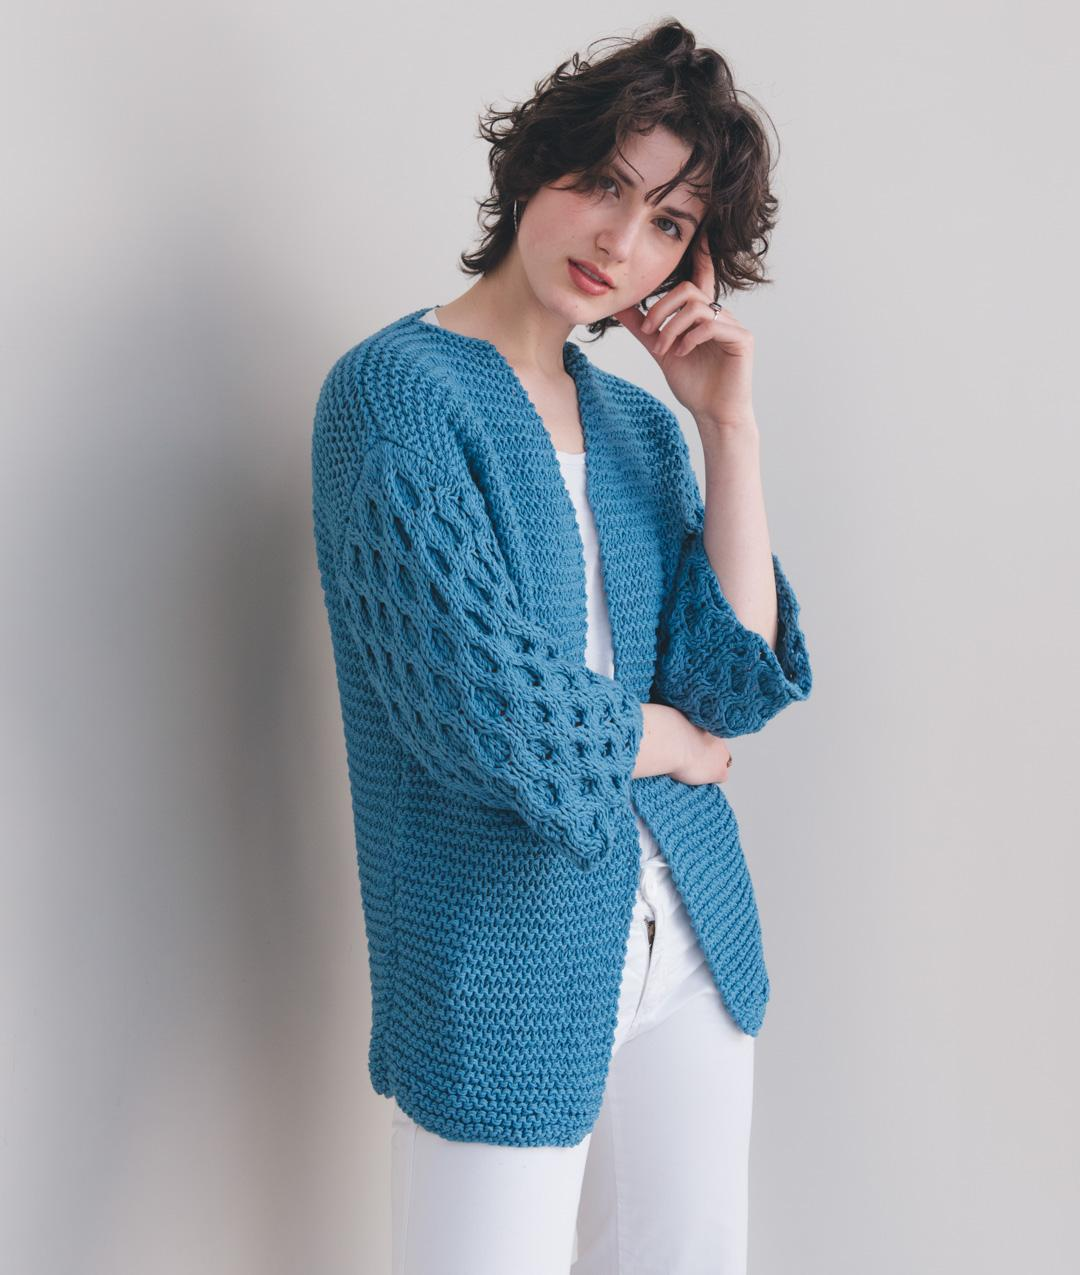 Summer 2018 Collection - Summer 2018 Collection - Cardigans and Vests  - Iris Cardi - 1